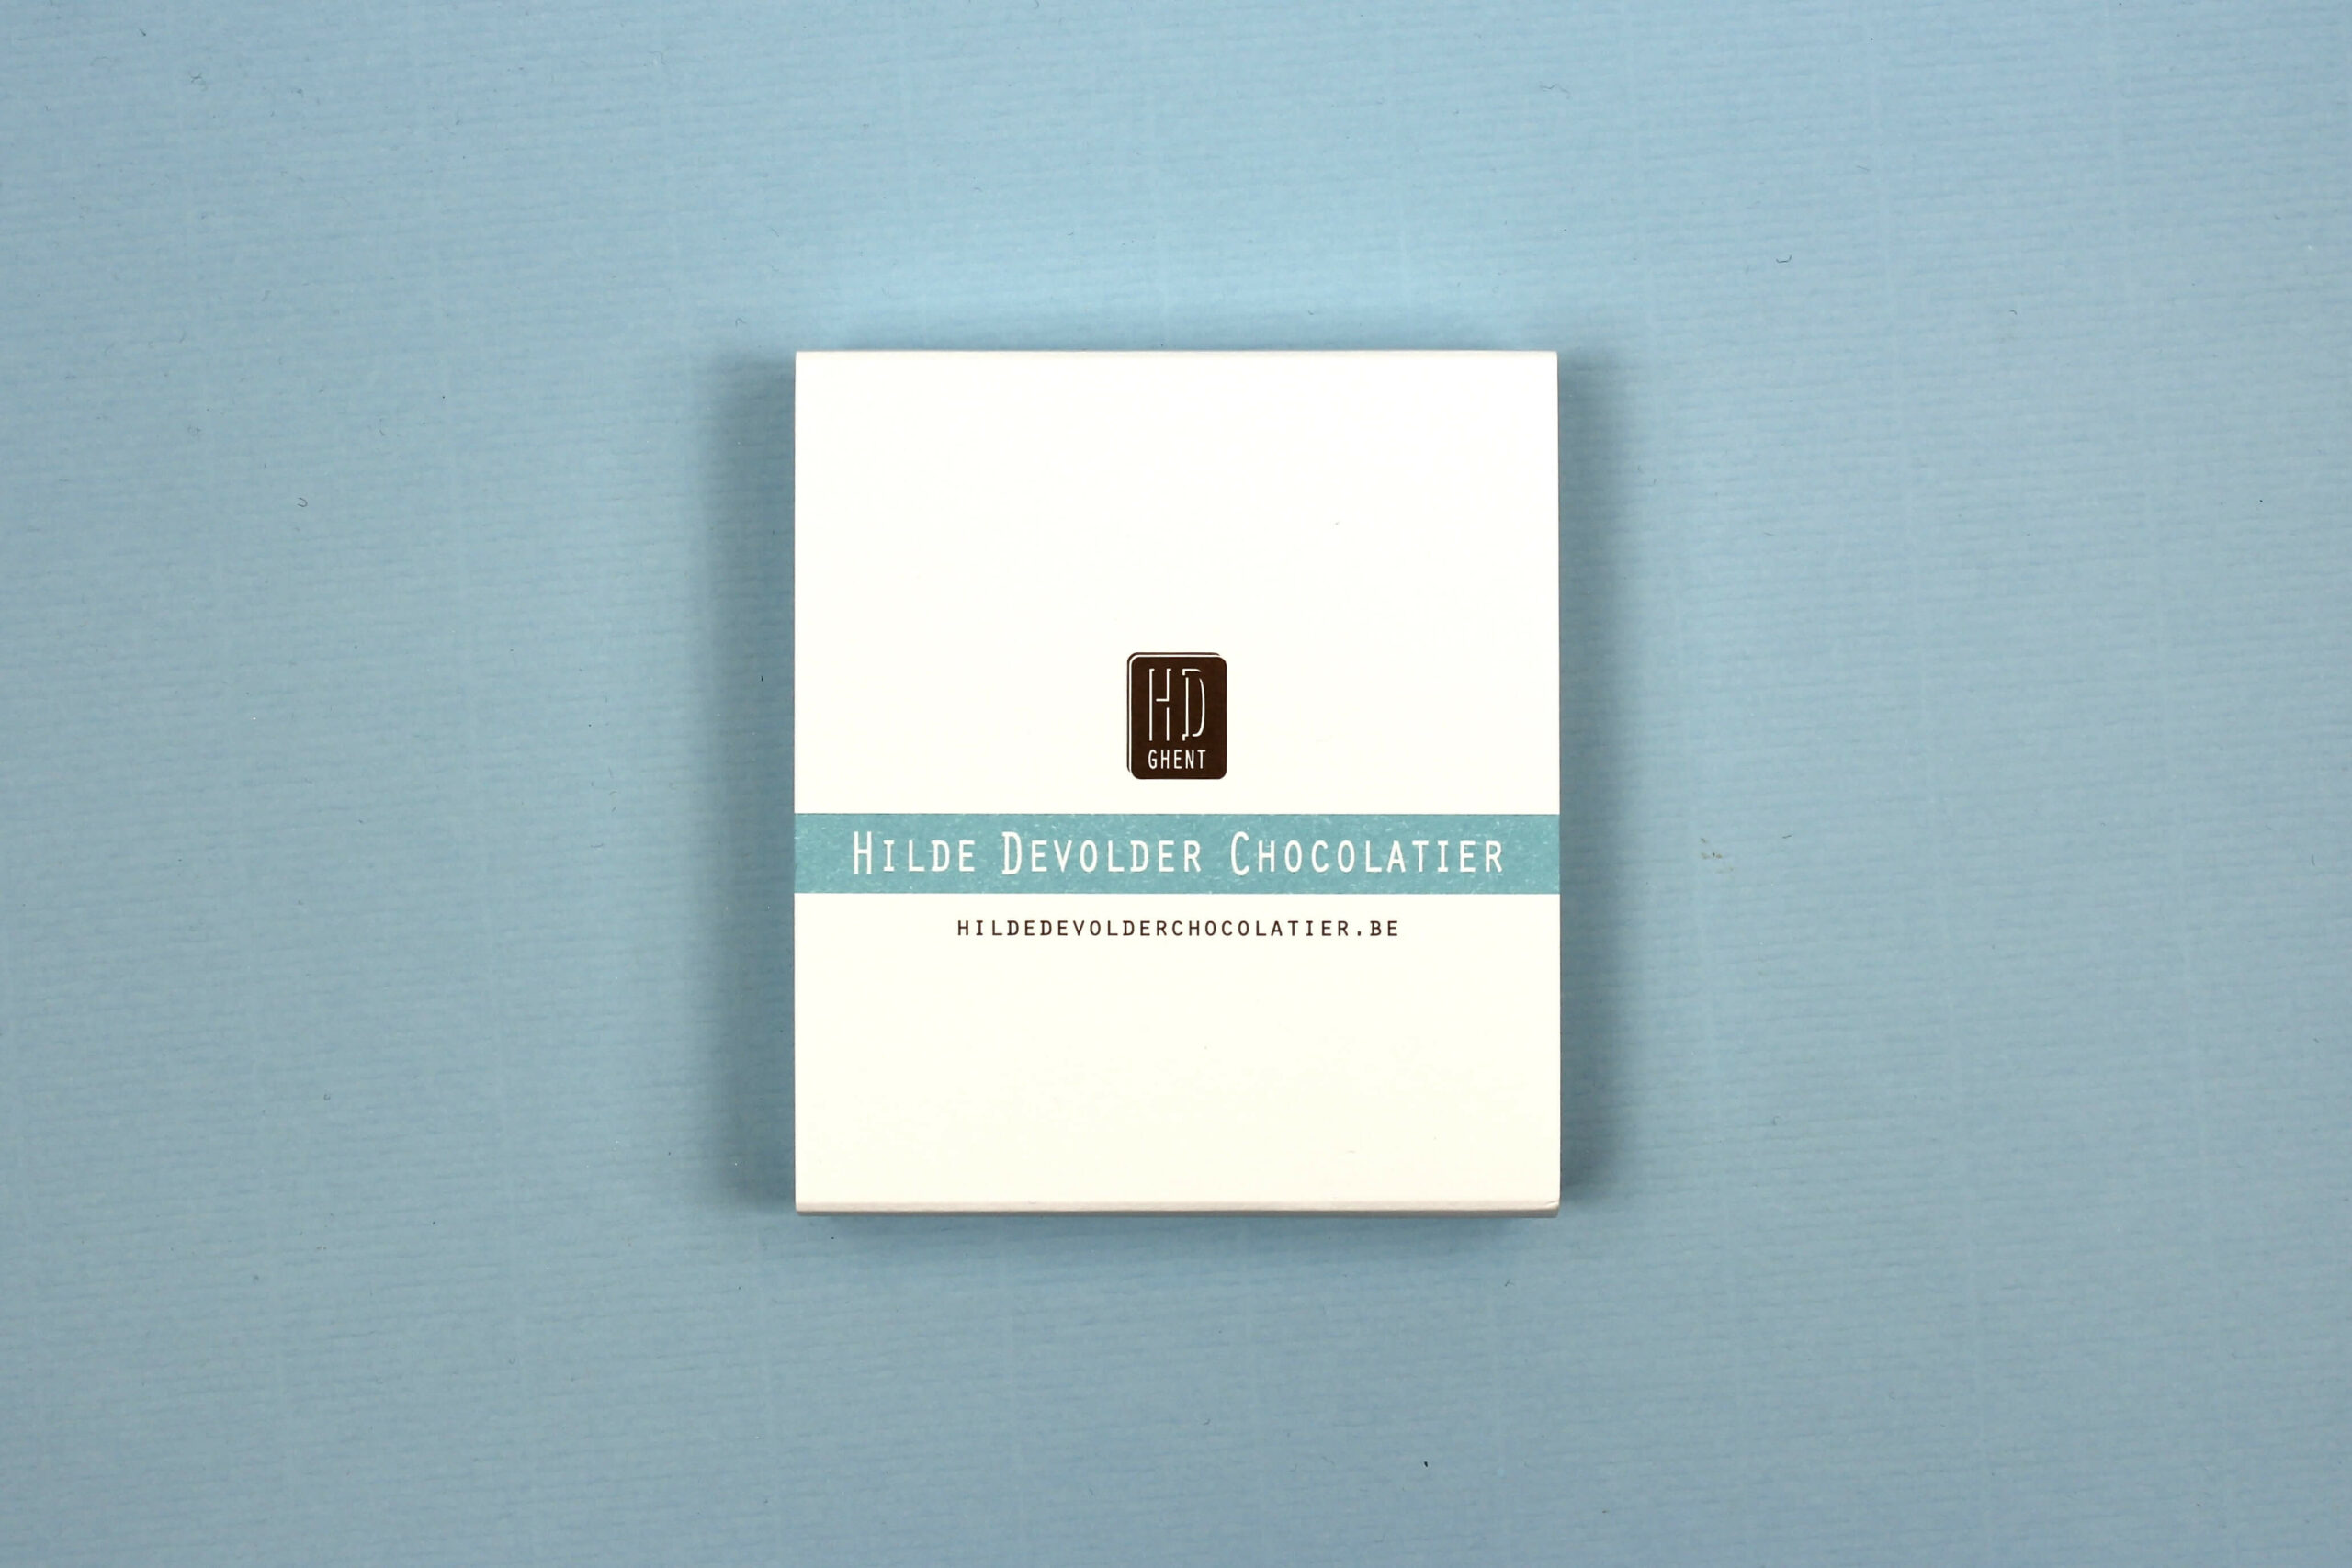 hd ghent by hilde devolder chocolatier box 15 -16